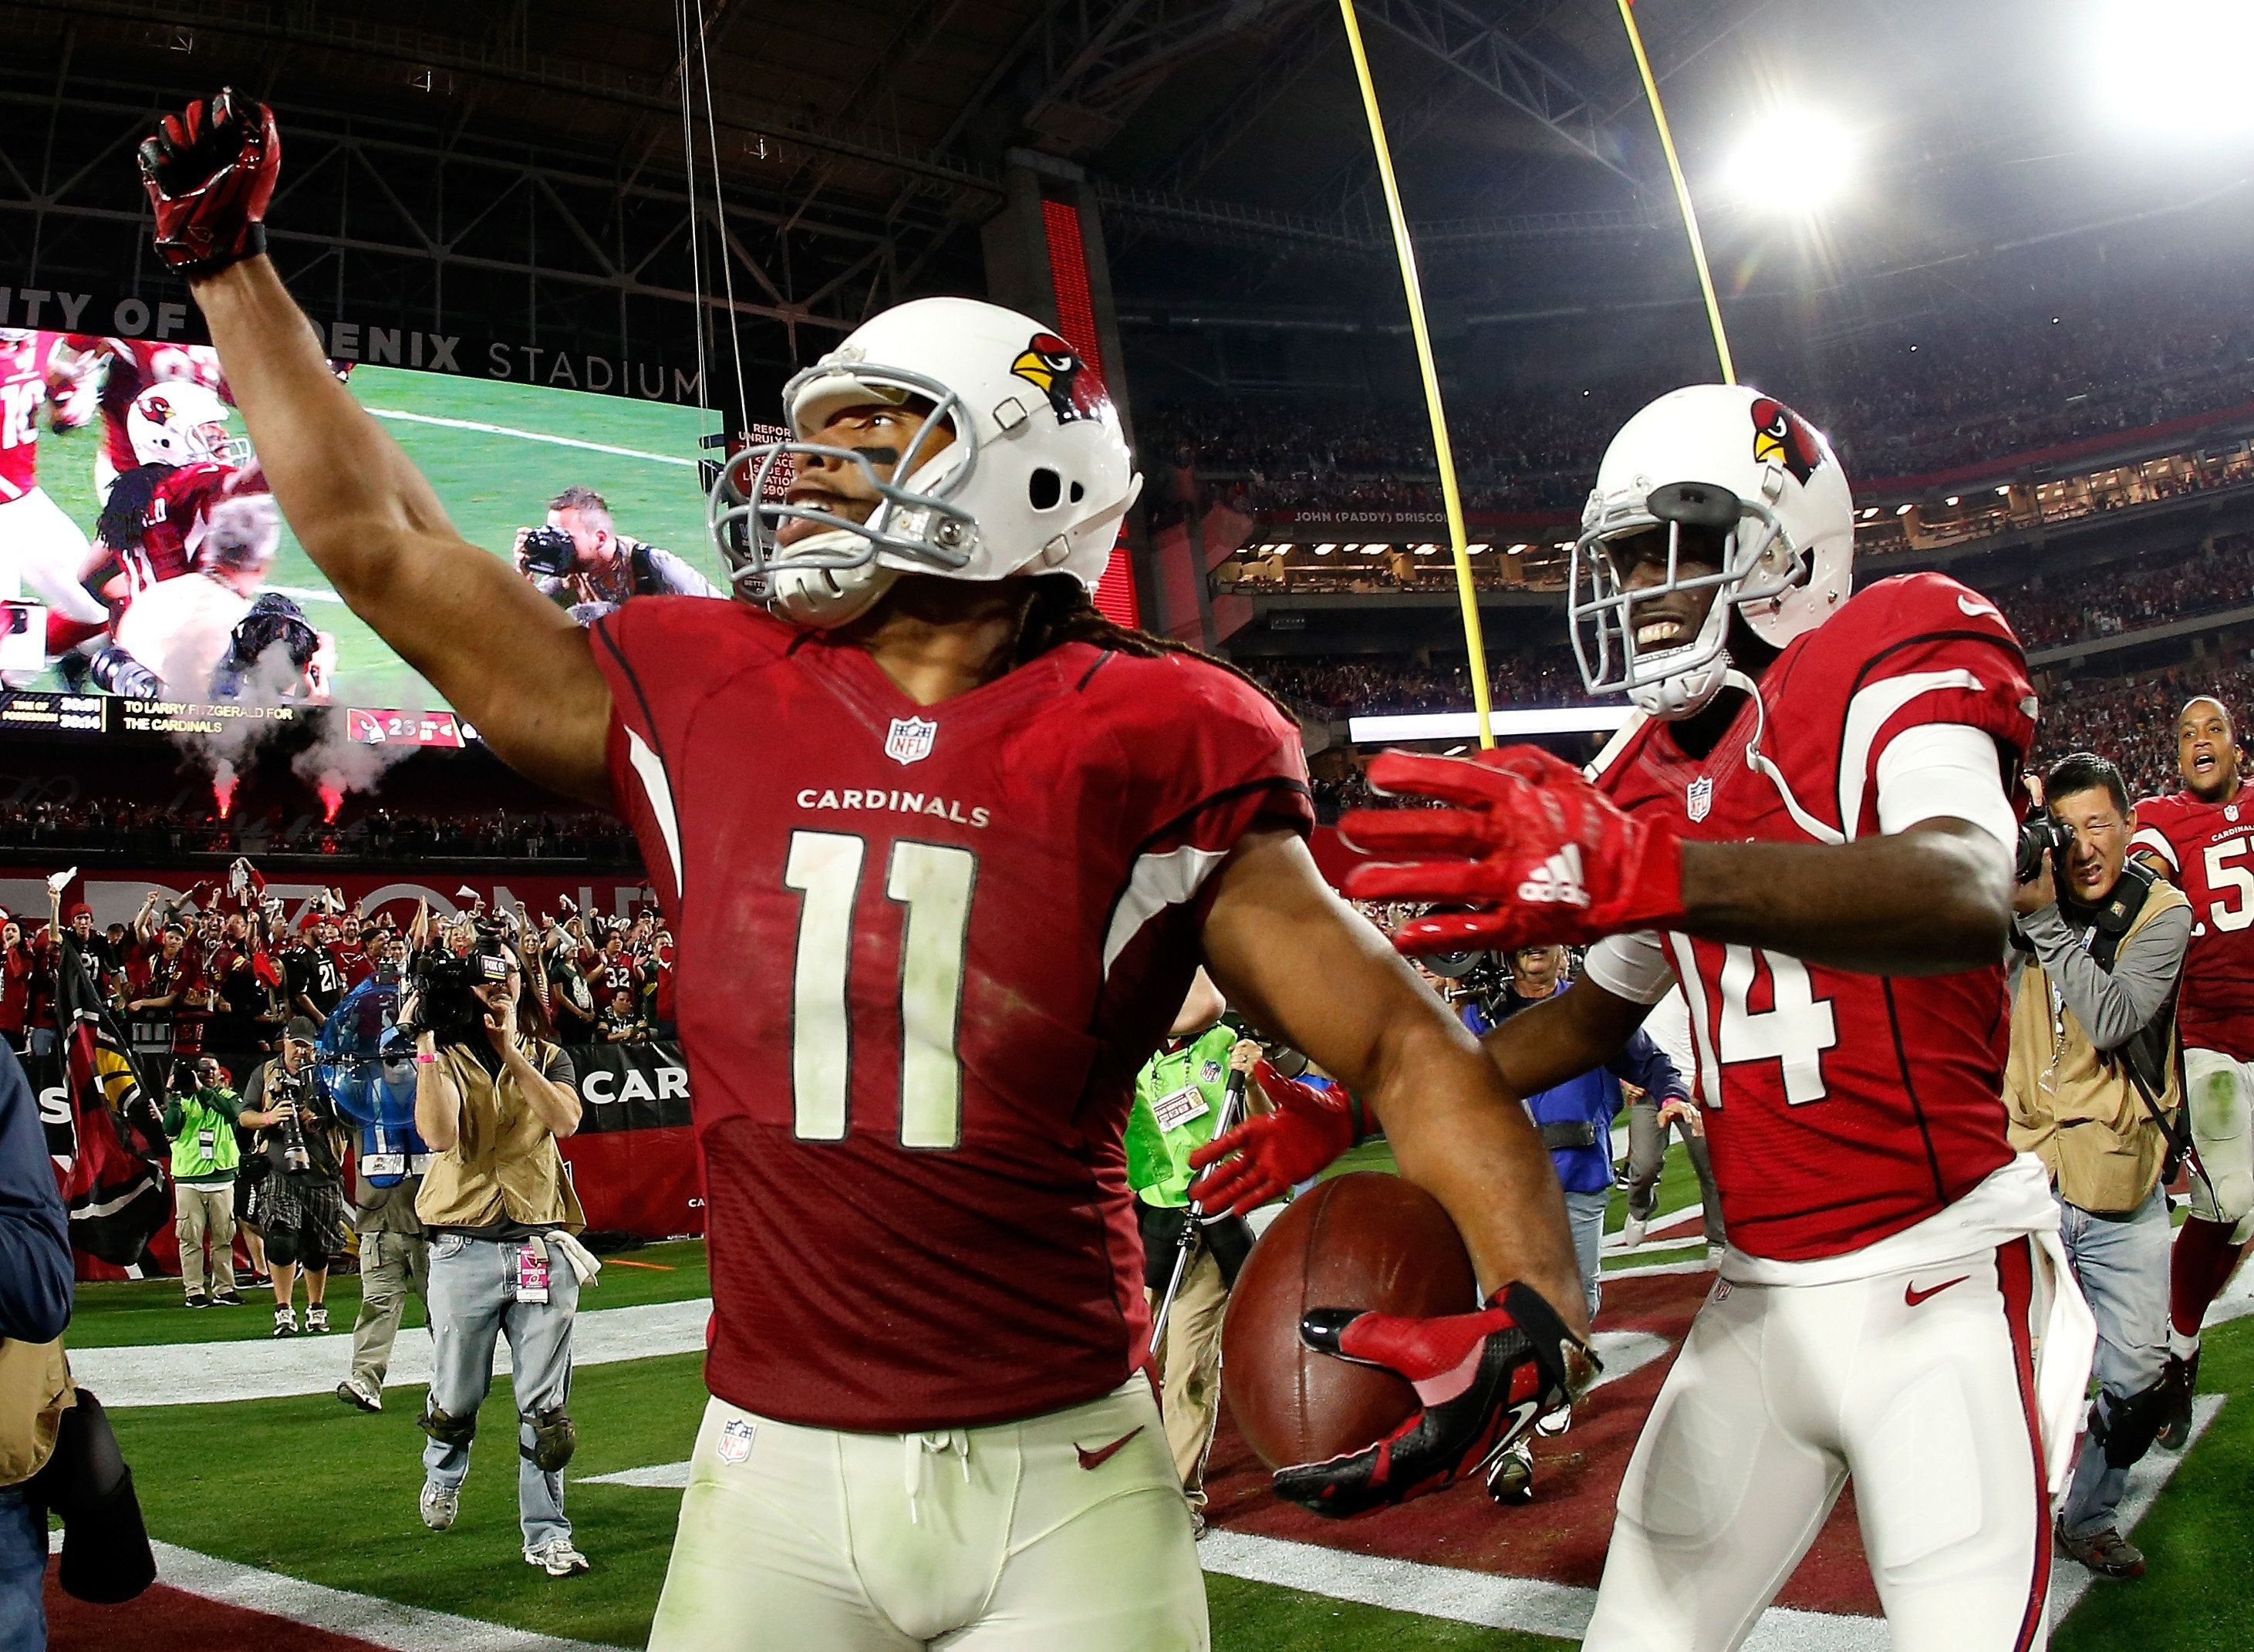 GLENDALE, AZ - JANUARY 16: Wide receiver Larry Fitzgerald #11 of the Arizona Cardinals celebrates his game winning touchdown in overtime with wide receiver J.J. Nelson #14 (right) during the NFC Divisional Playoff Game at University of Phoenix Stadium on January 16, 2016 in Glendale, Arizona. The Arizona Cardinals beat the Green Bay Packers 26-20. (Photo by Christian Petersen/Getty Images)